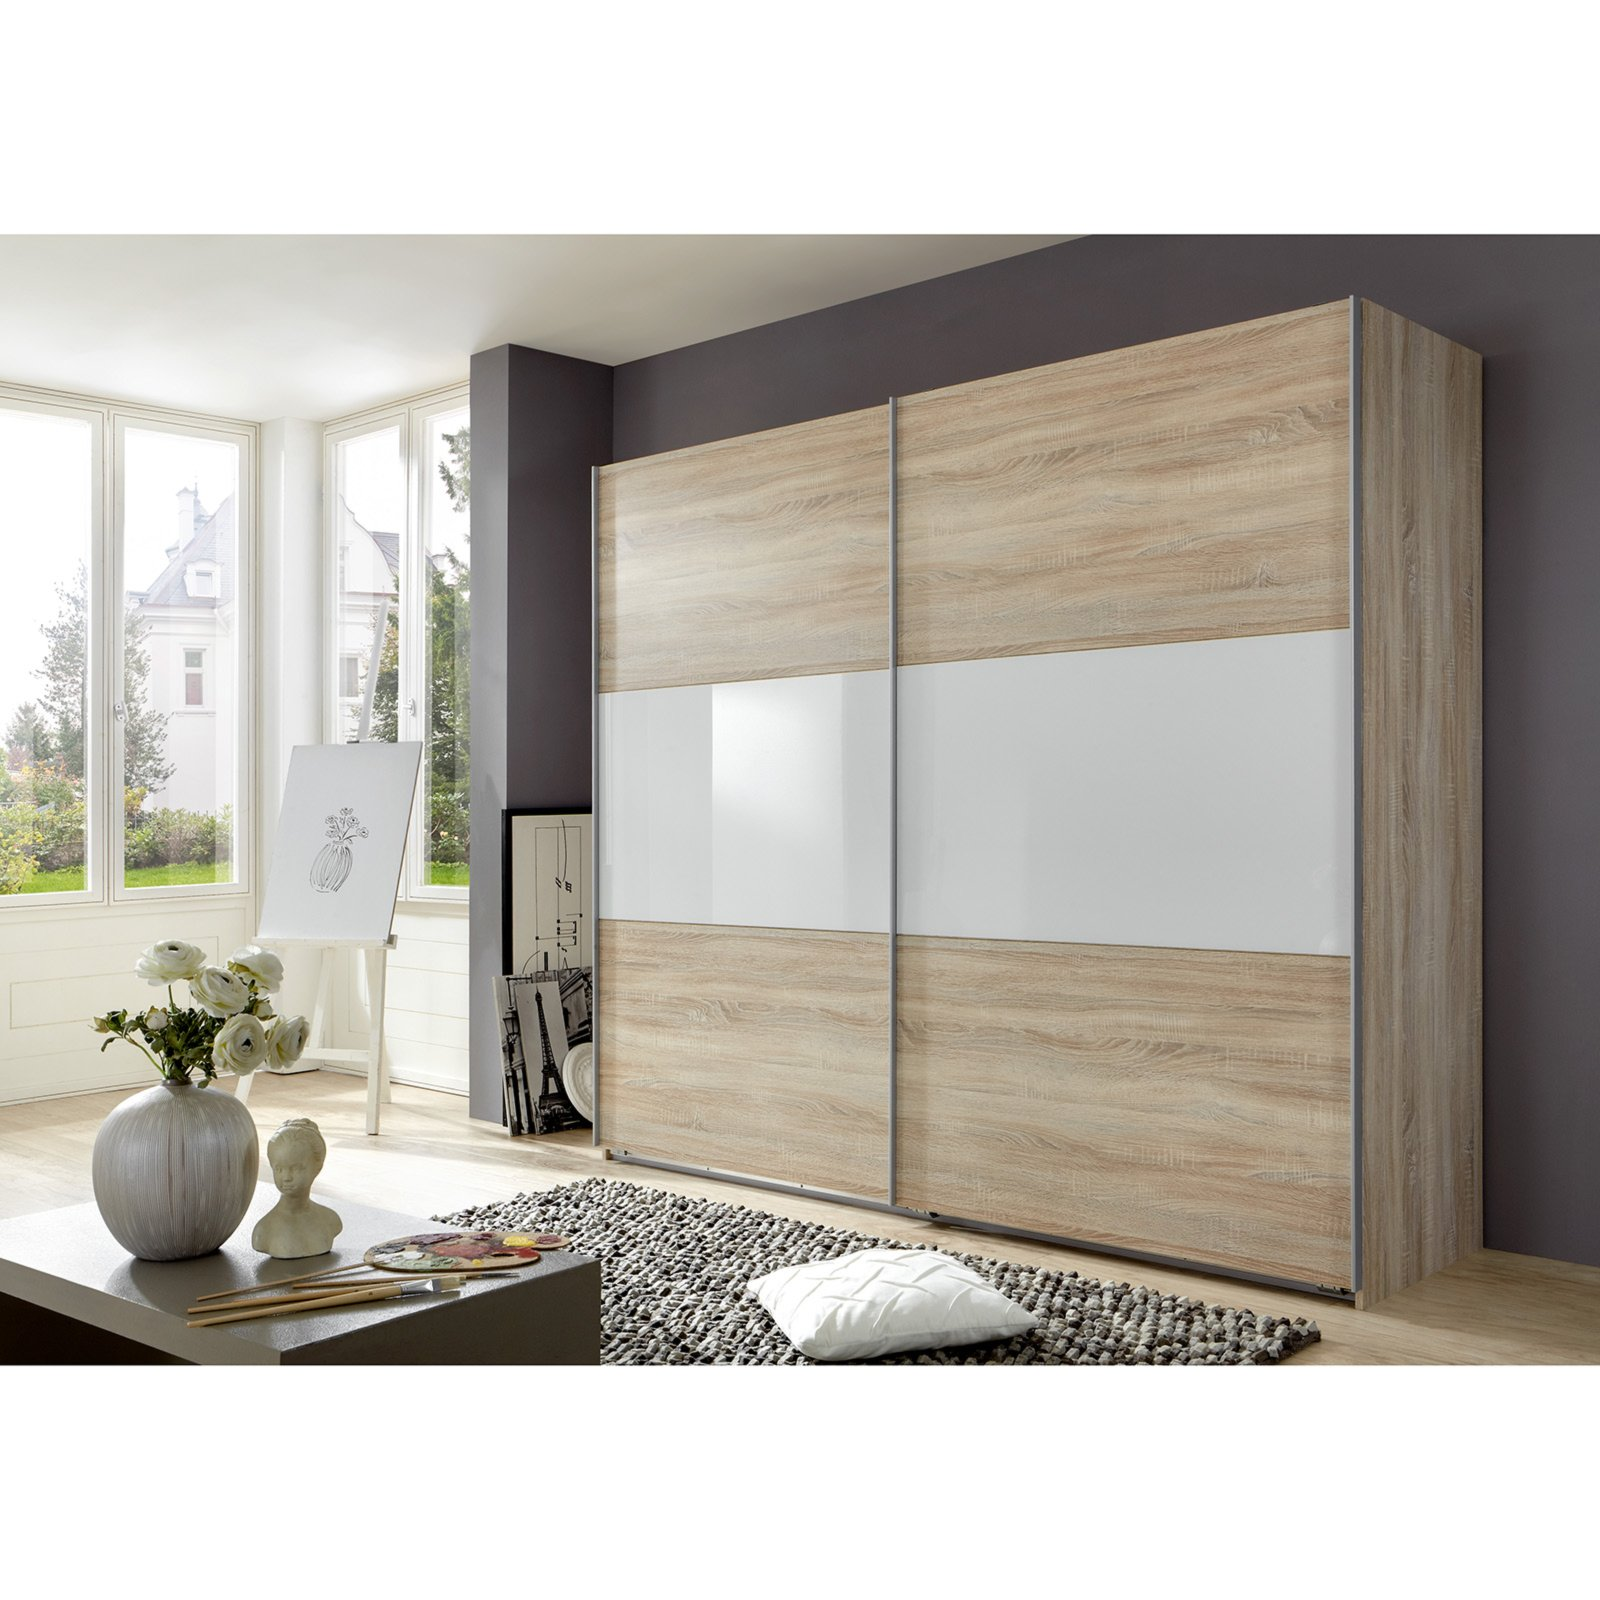 schwebet renschrank match up sonoma eiche wei 270 cm breit ebay. Black Bedroom Furniture Sets. Home Design Ideas